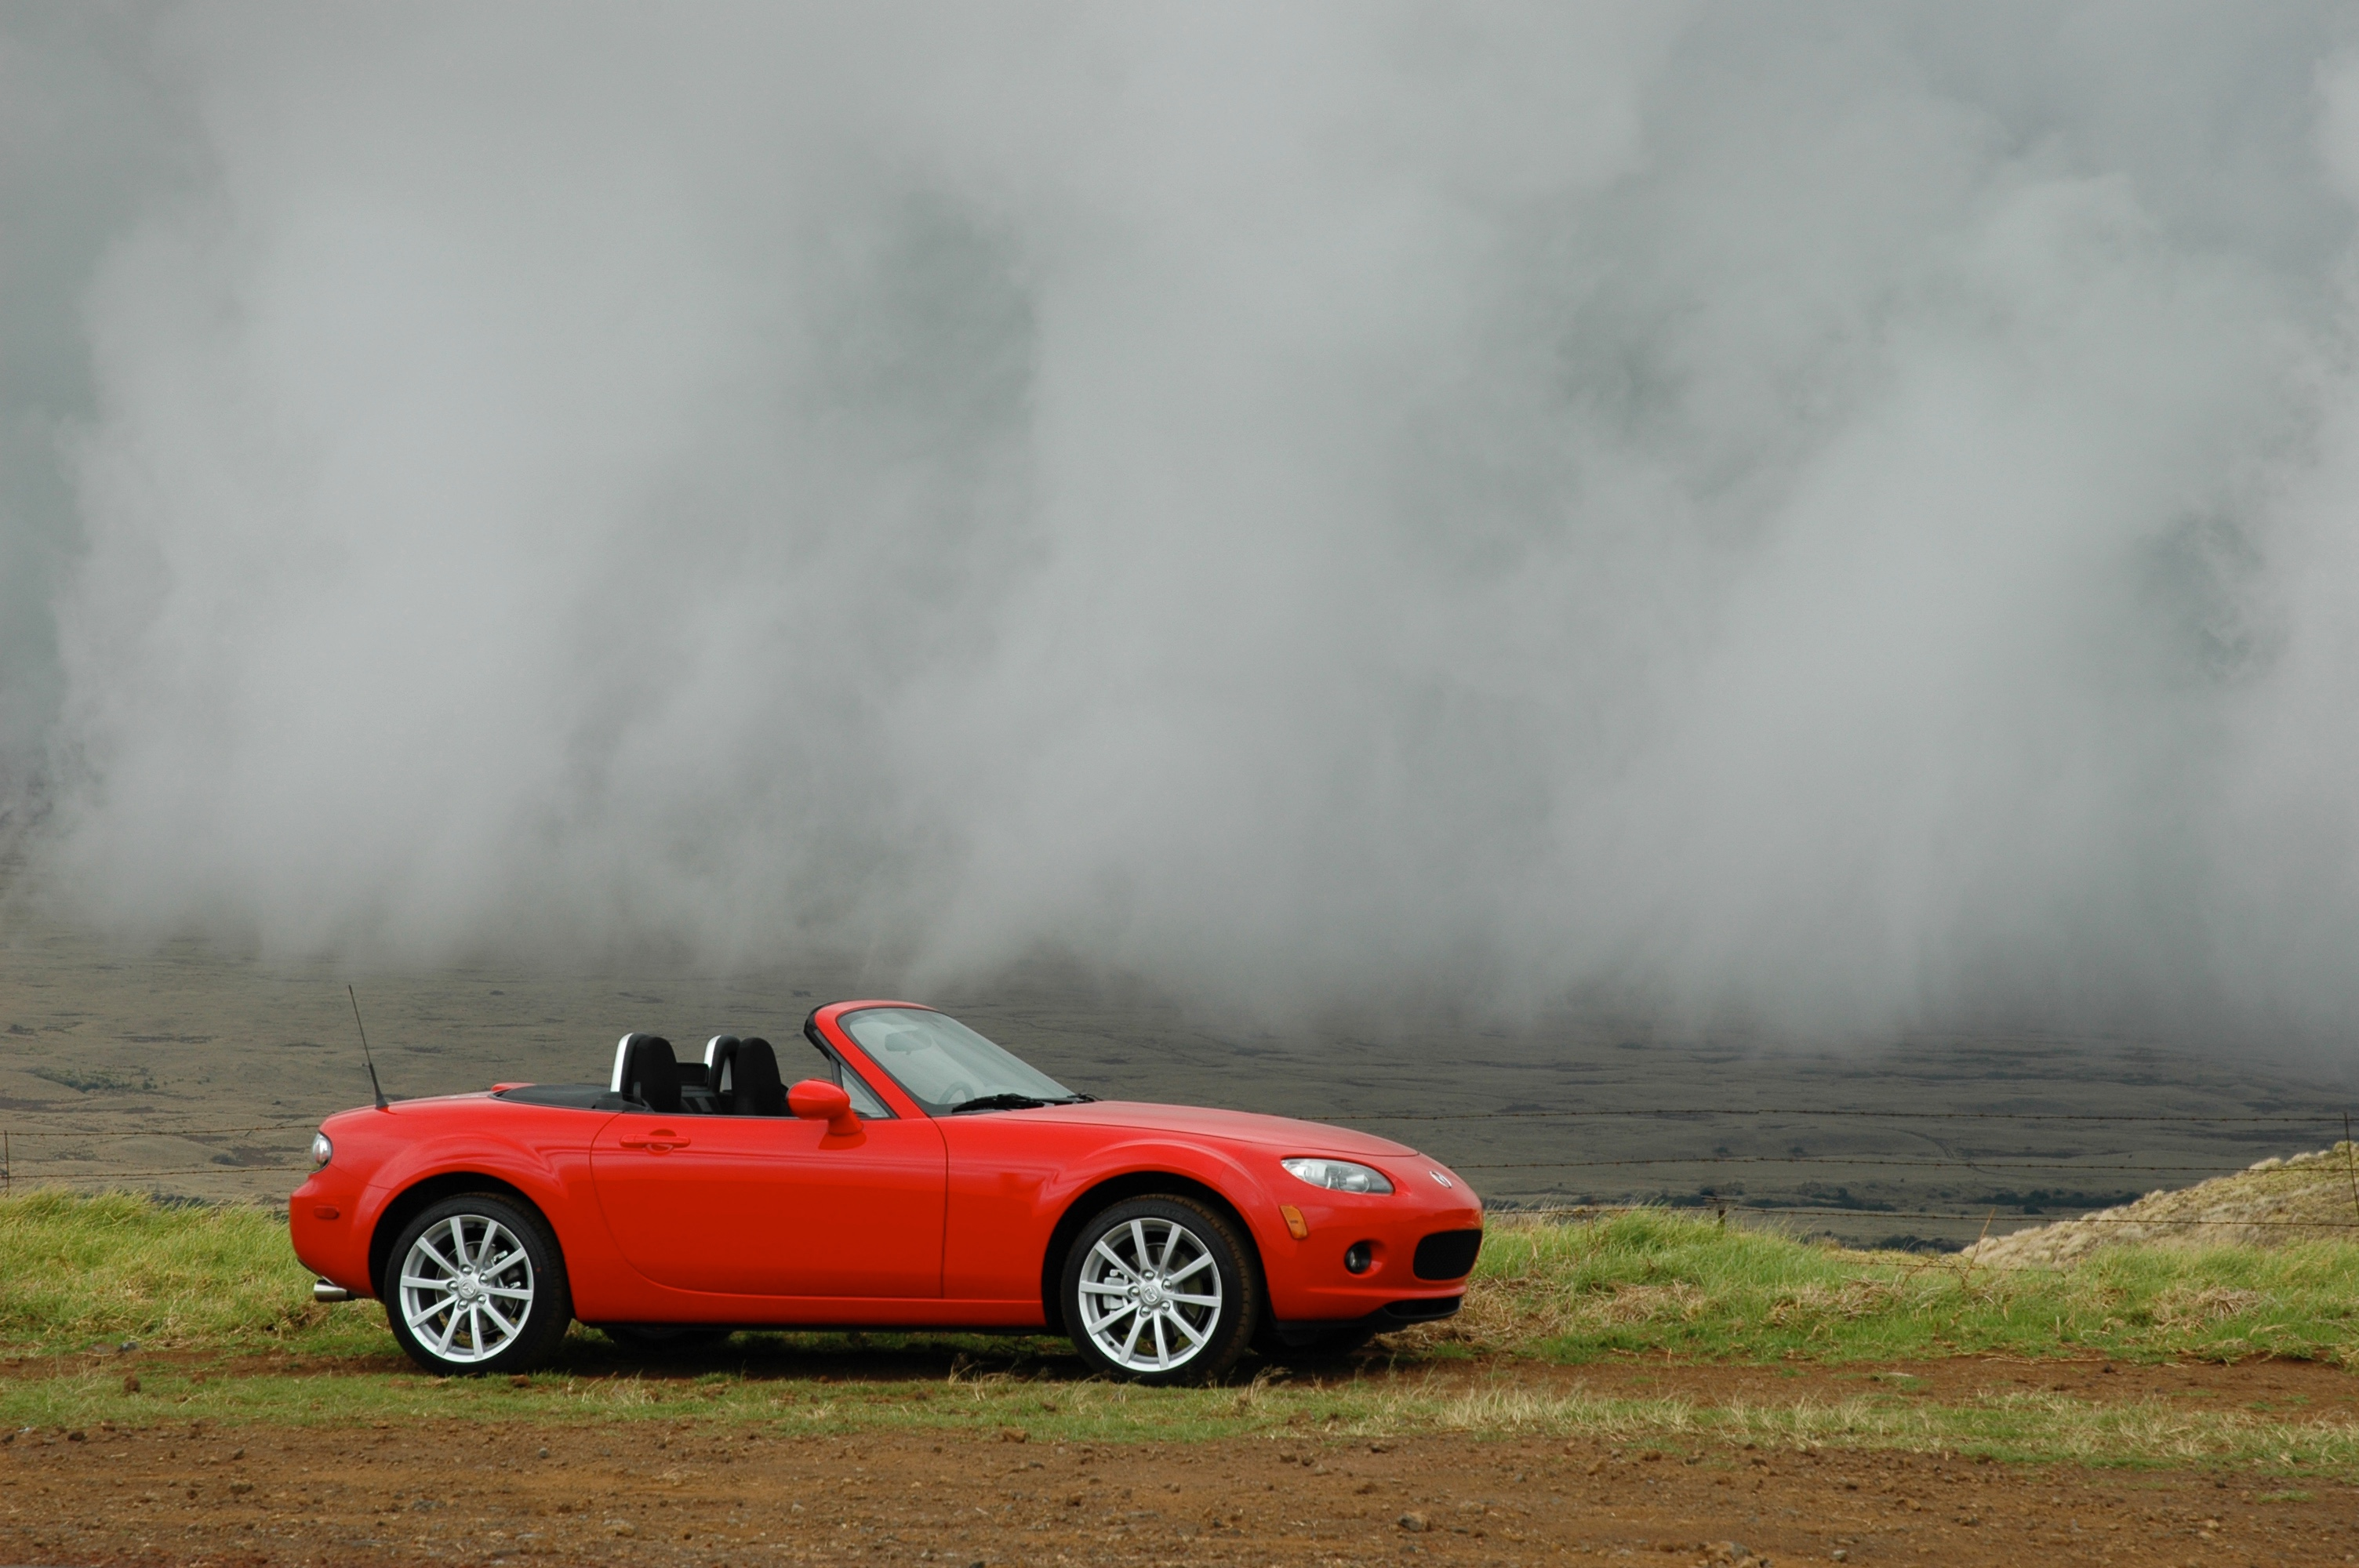 First test drive: The New 3rd Generation MX-5/Miata